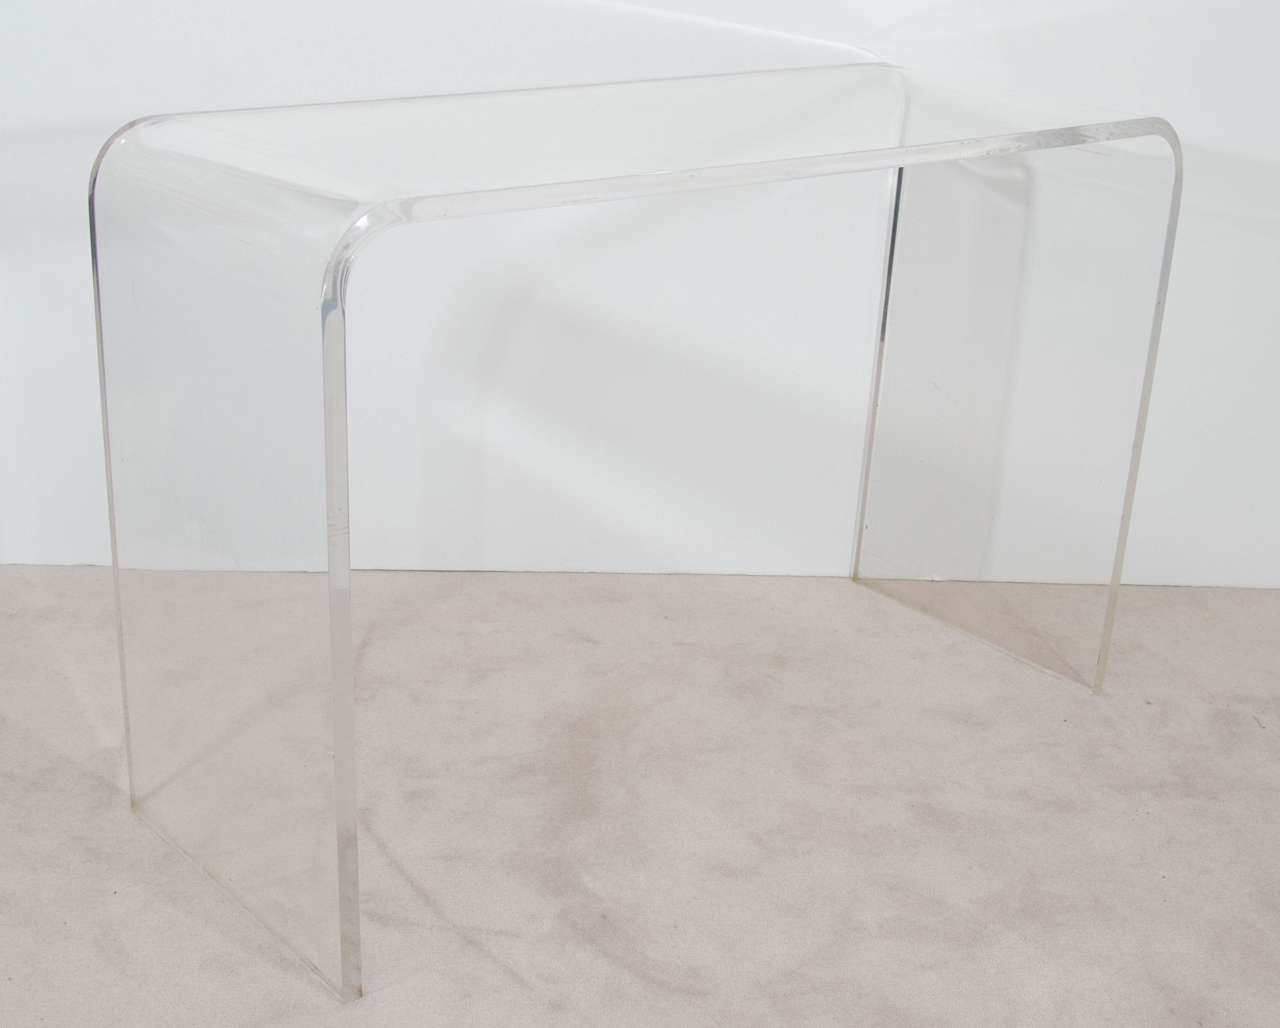 Vintage Modern Waterfall Lucite Console Table, 1970s In Good Condition For Sale In New York, NY